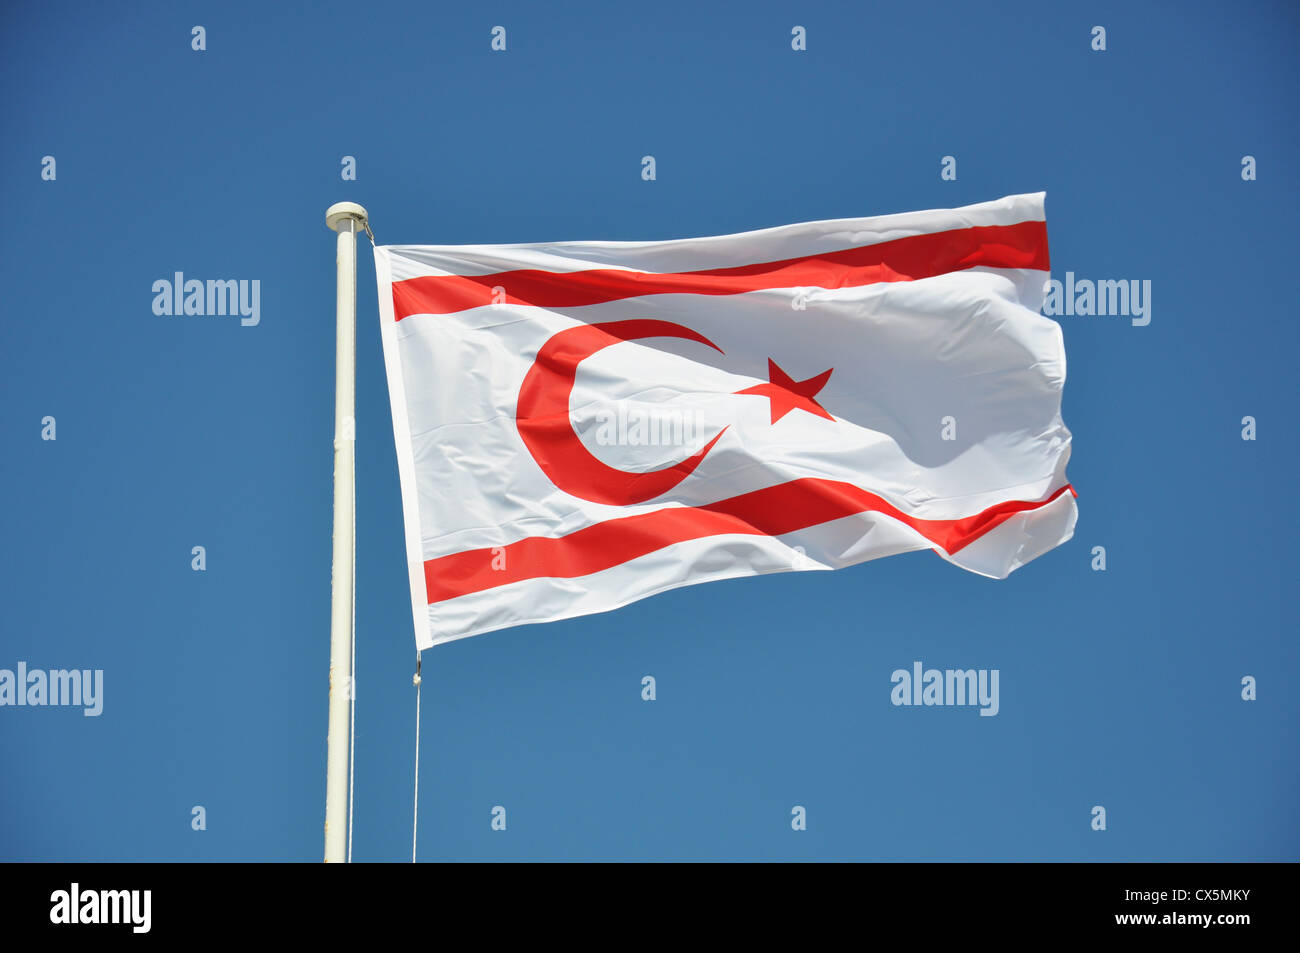 Turkish Republic Of Northern Cyprus (TRNC) flag flying against a blue sky - Stock Image